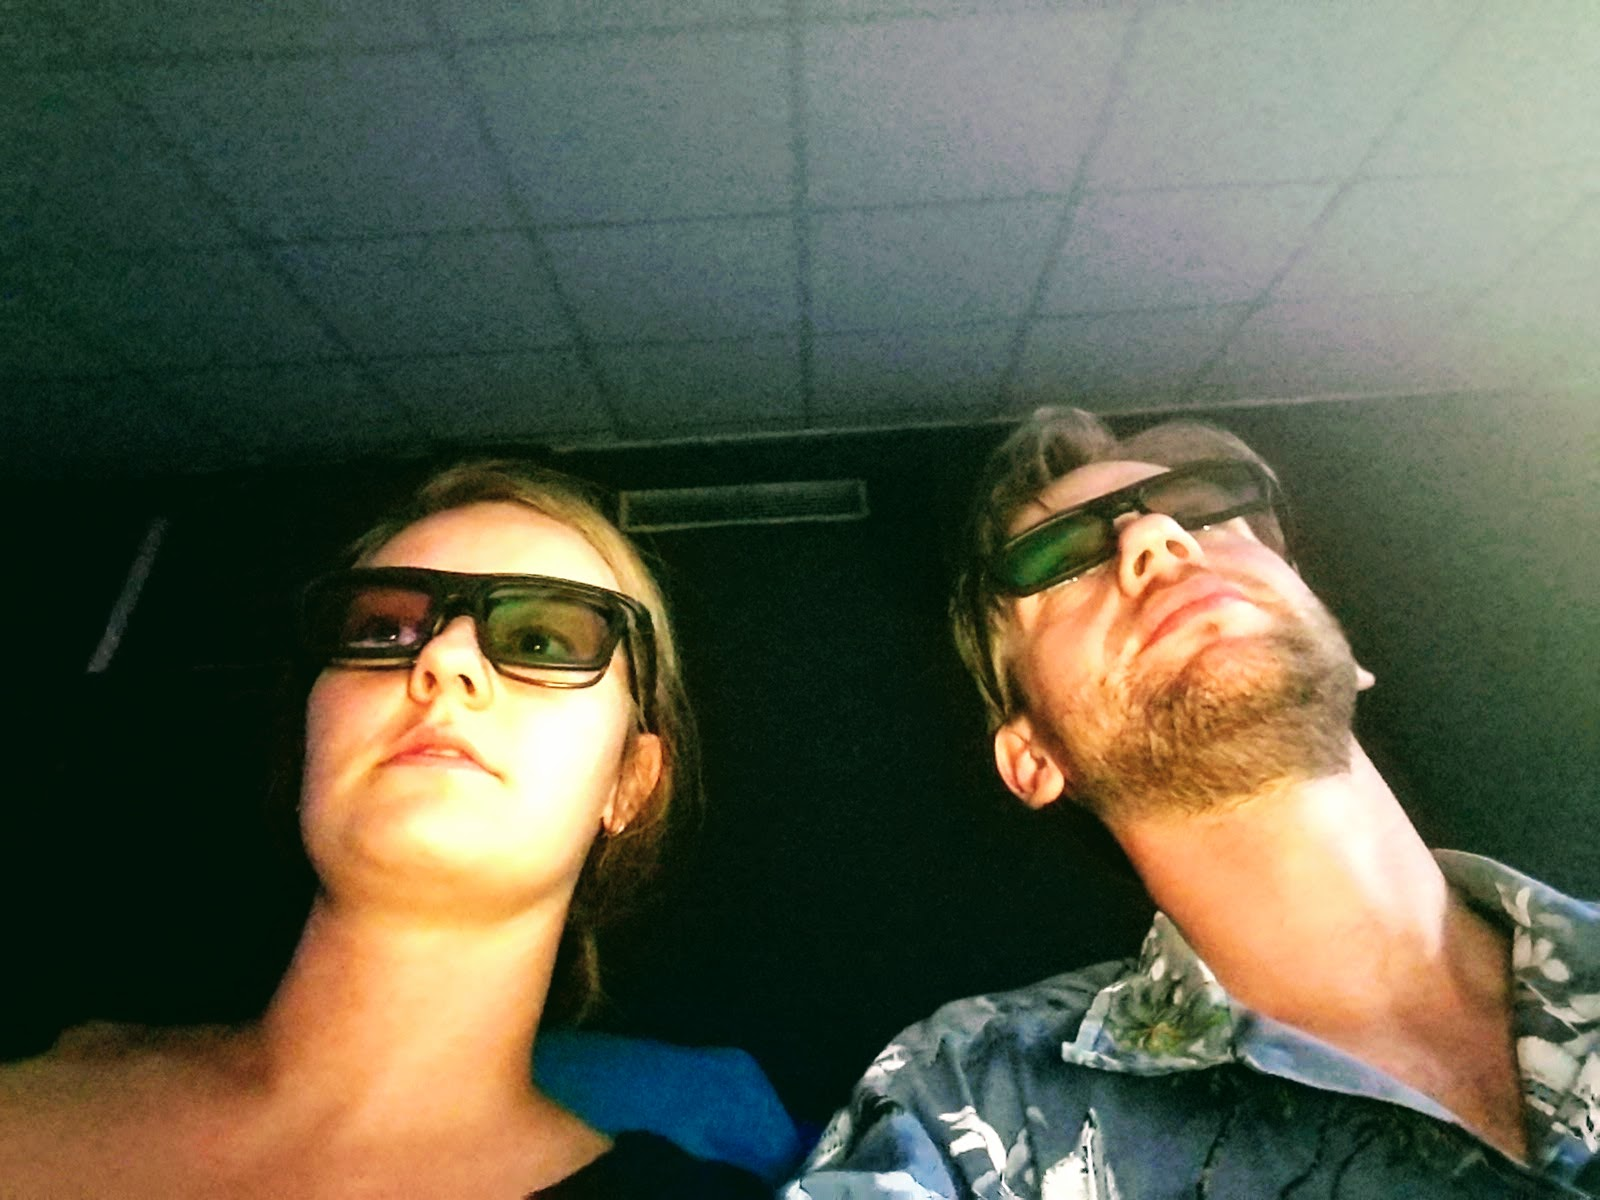 3D movies are cool.